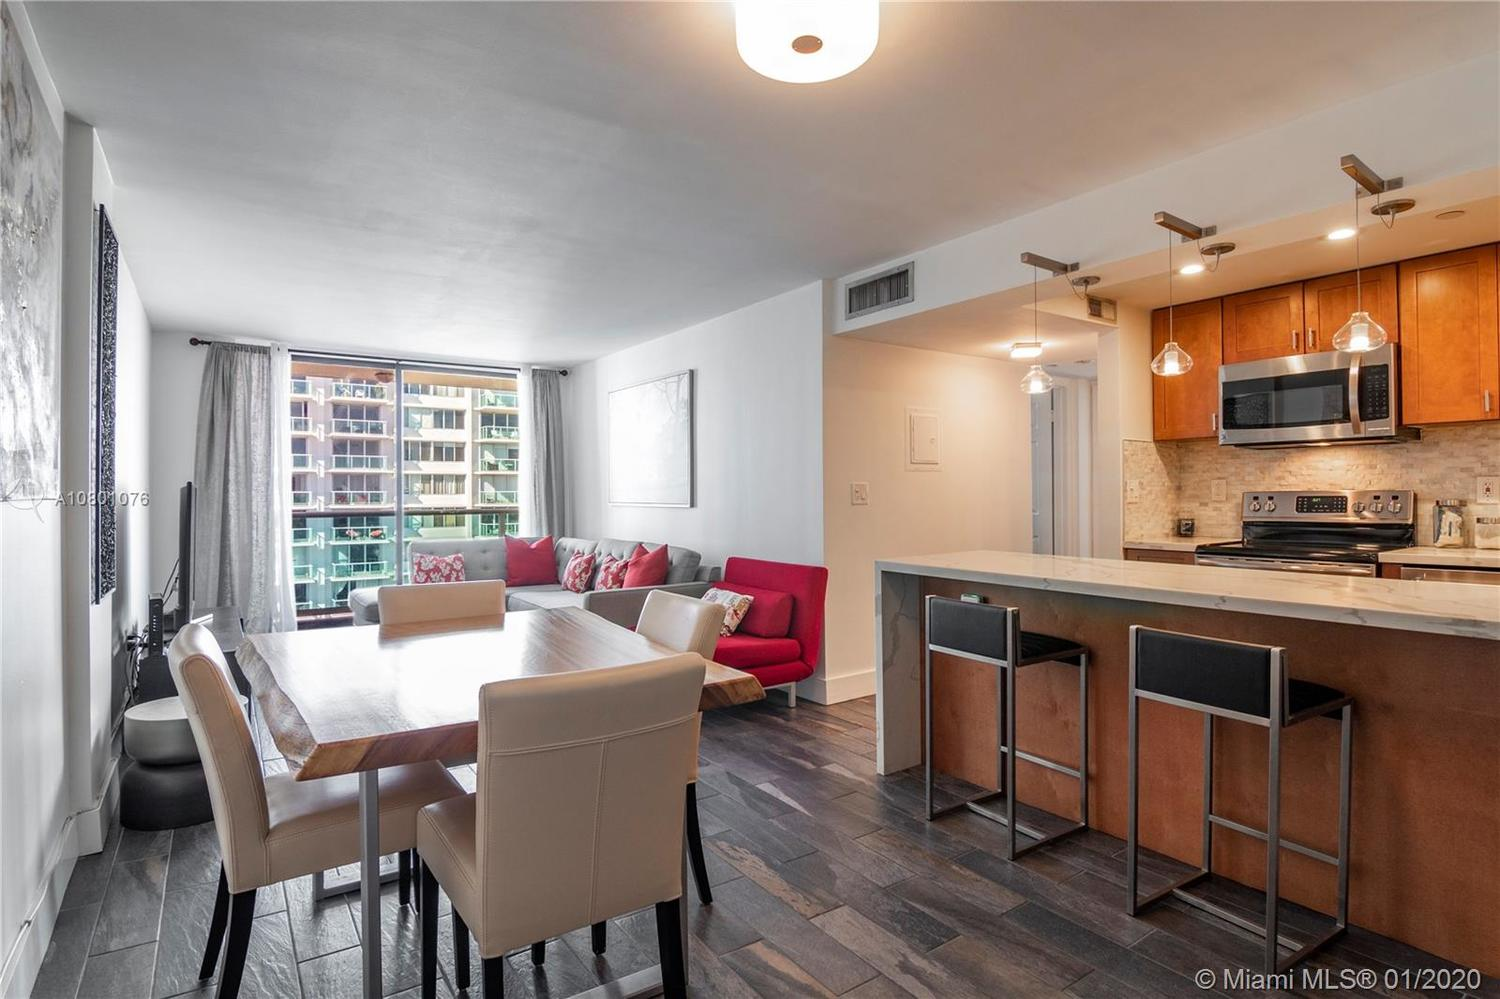 1035 West Avenue, Unit PH1 Miami Beach, FL 33139